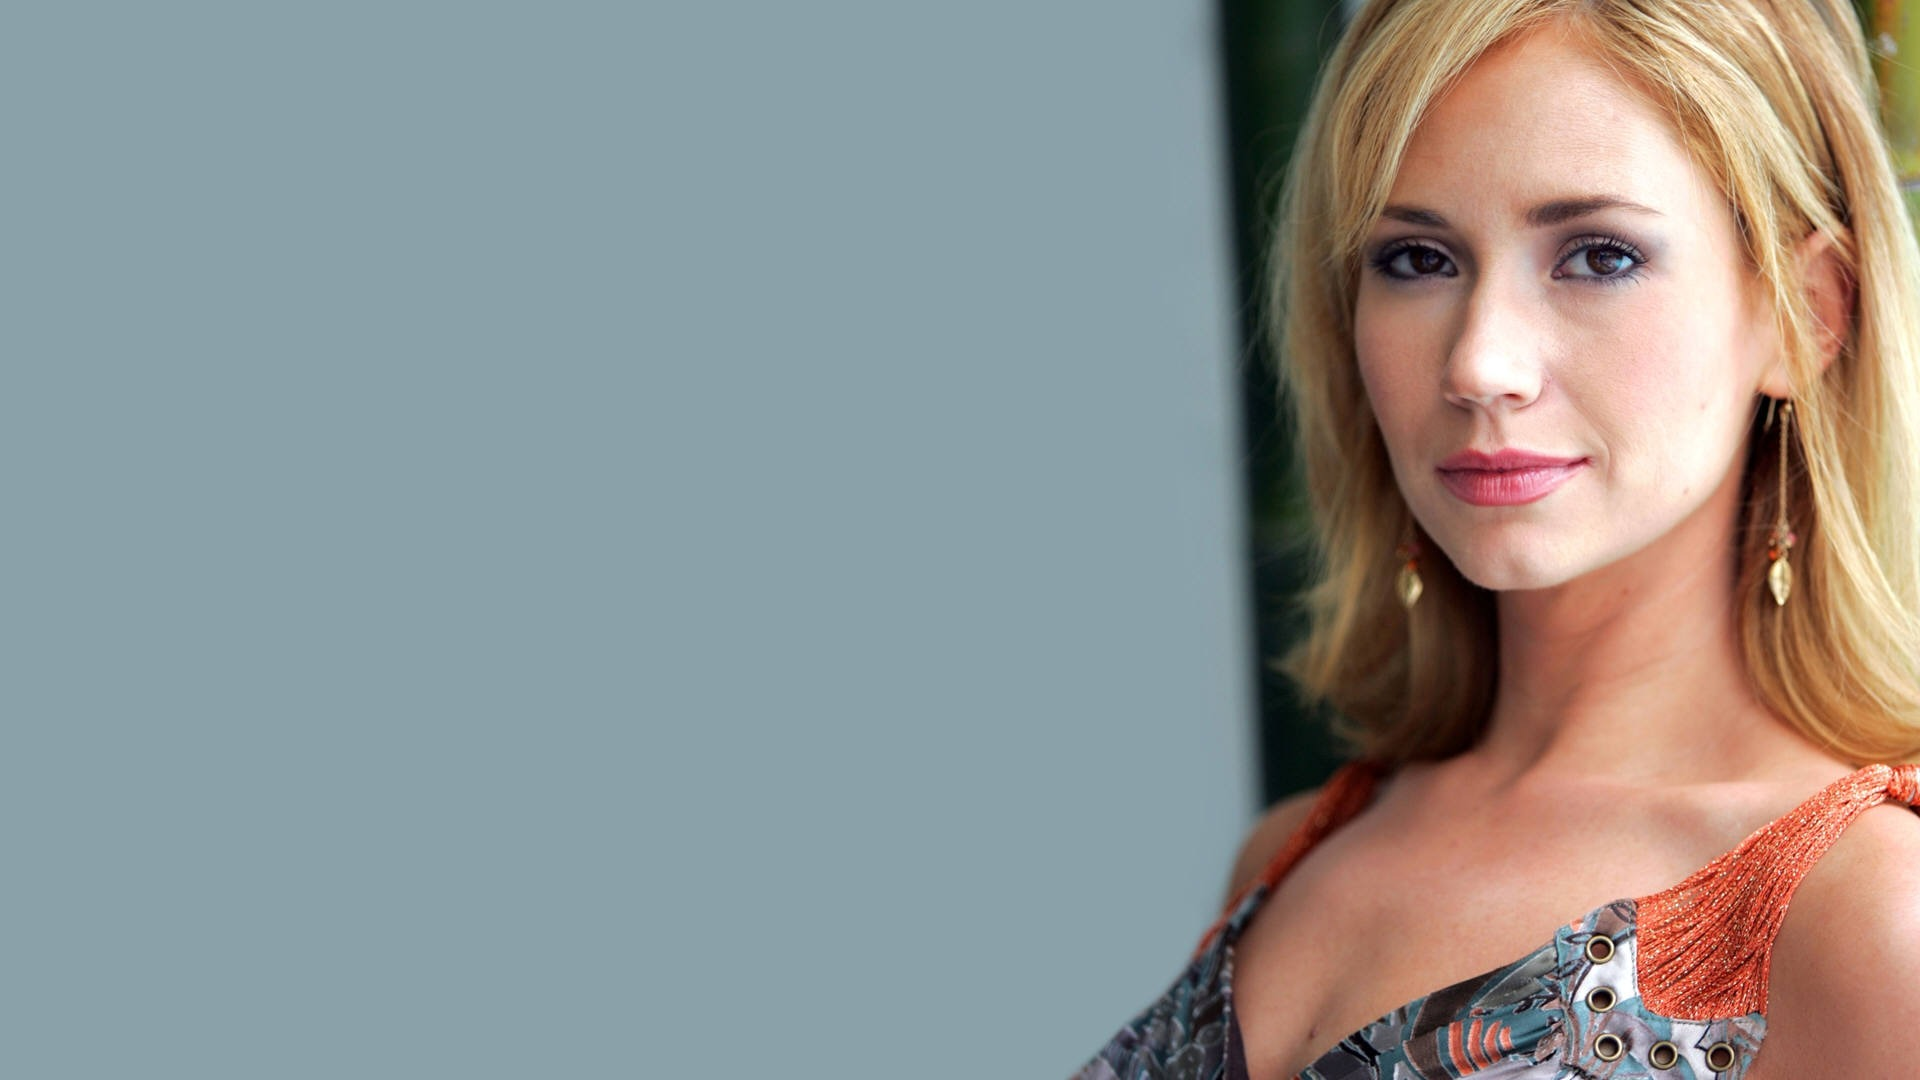 Ashley Jones #008 - 1920x1080 Wallpapers Pictures Photos Images